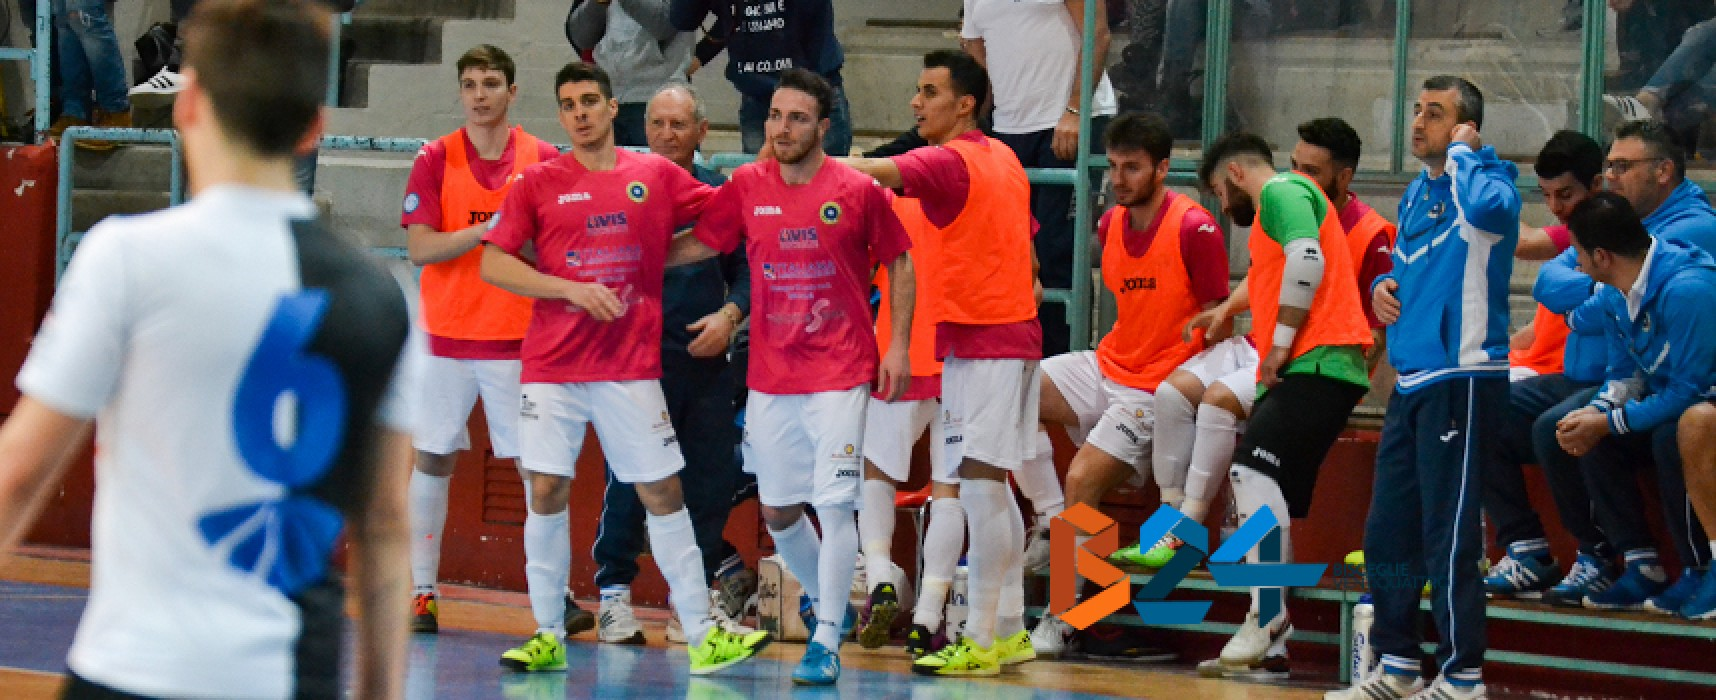 Futsal Bisceglie-Domar Takler Matera 4-2 / VIDEO HIGHLIGHTS